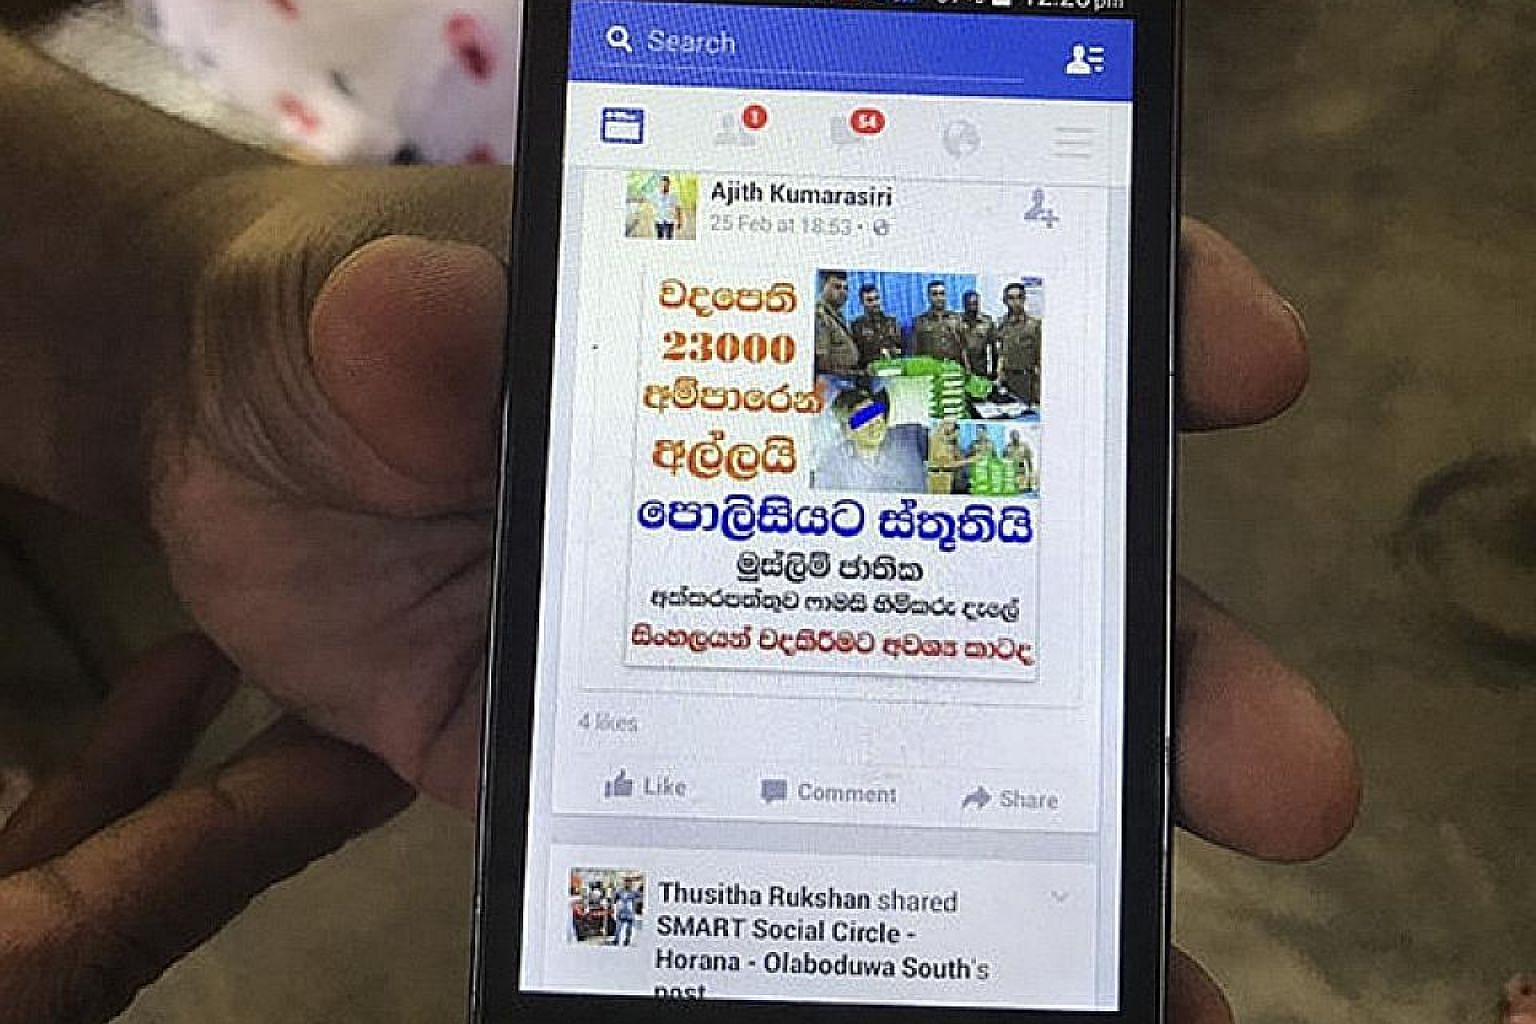 Facebook says it is working with civil society organisations in Sri Lanka to familiarise its staff with Sinhala slurs and racist epithets, following violence in March fanned by extremist posts.